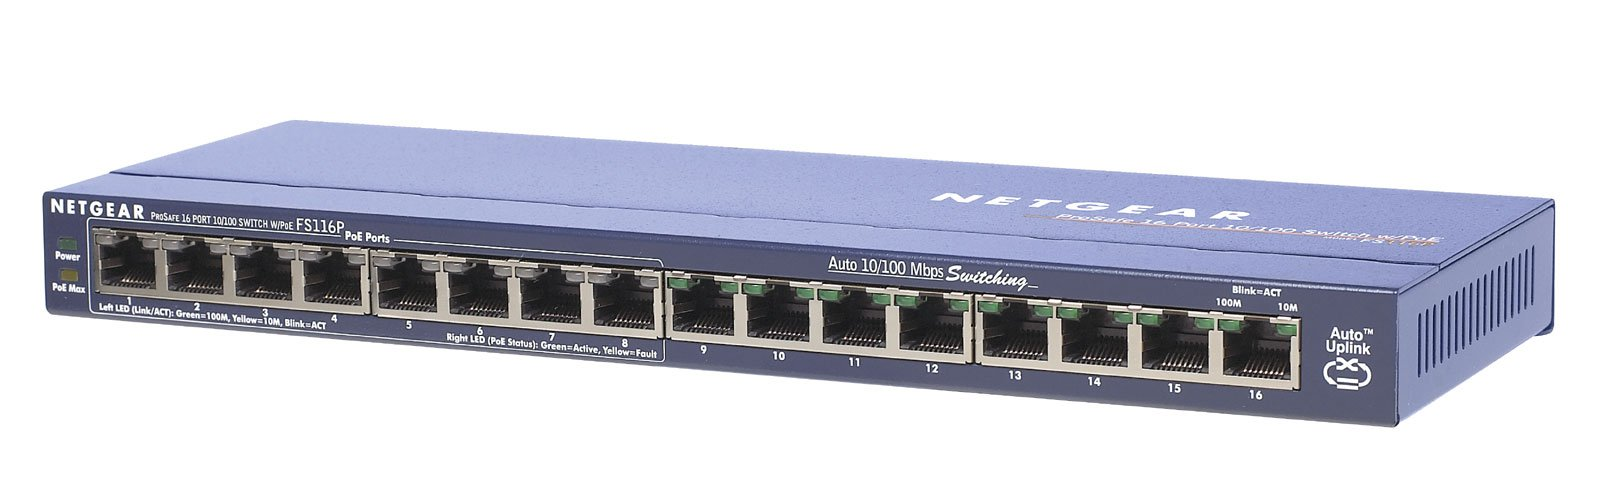 ProSafe 16-Port 10/100 Desktop Switch with 8-Port Power over Ethernet